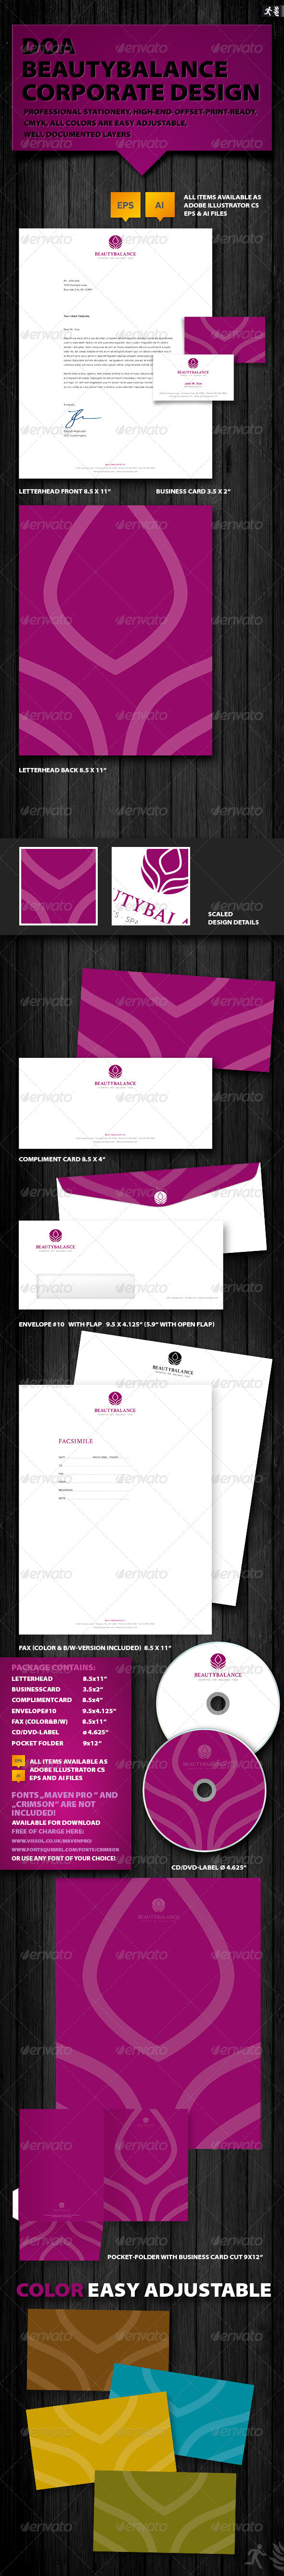 DOA Beautybalance Corporate Design - Stationery Print Templates